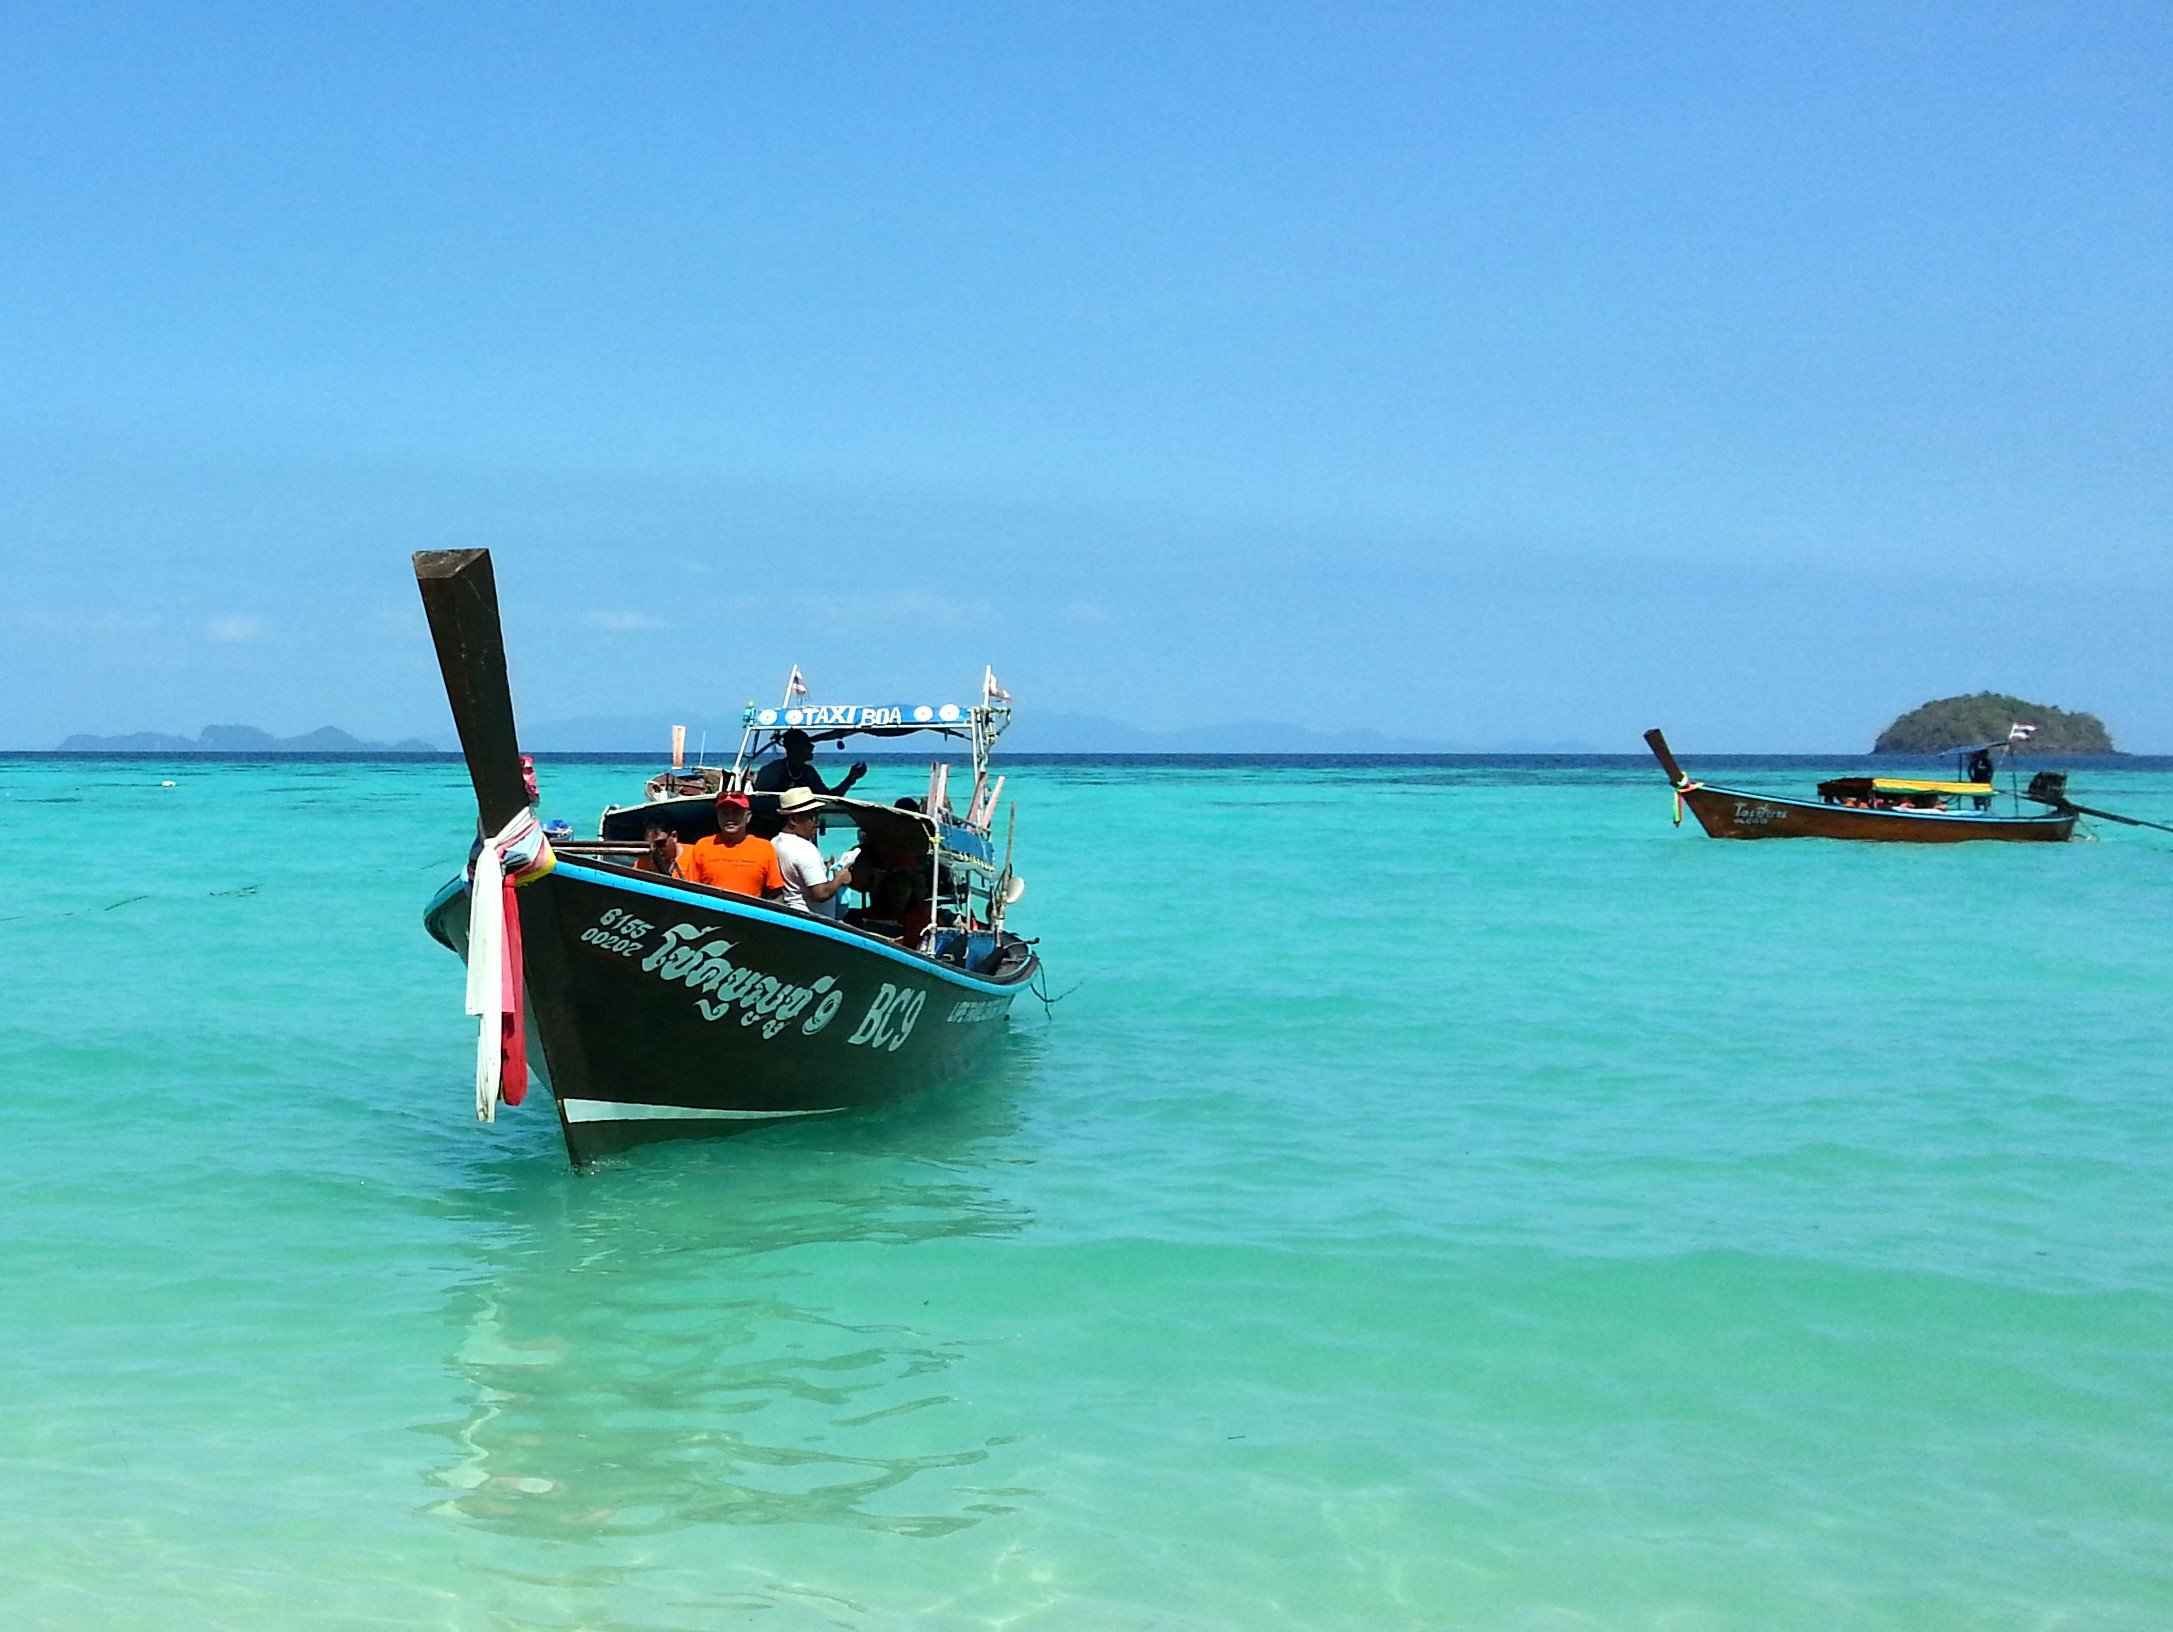 Longtail boat services to Koh Libong and Koh Muk depart from a pier near Trang